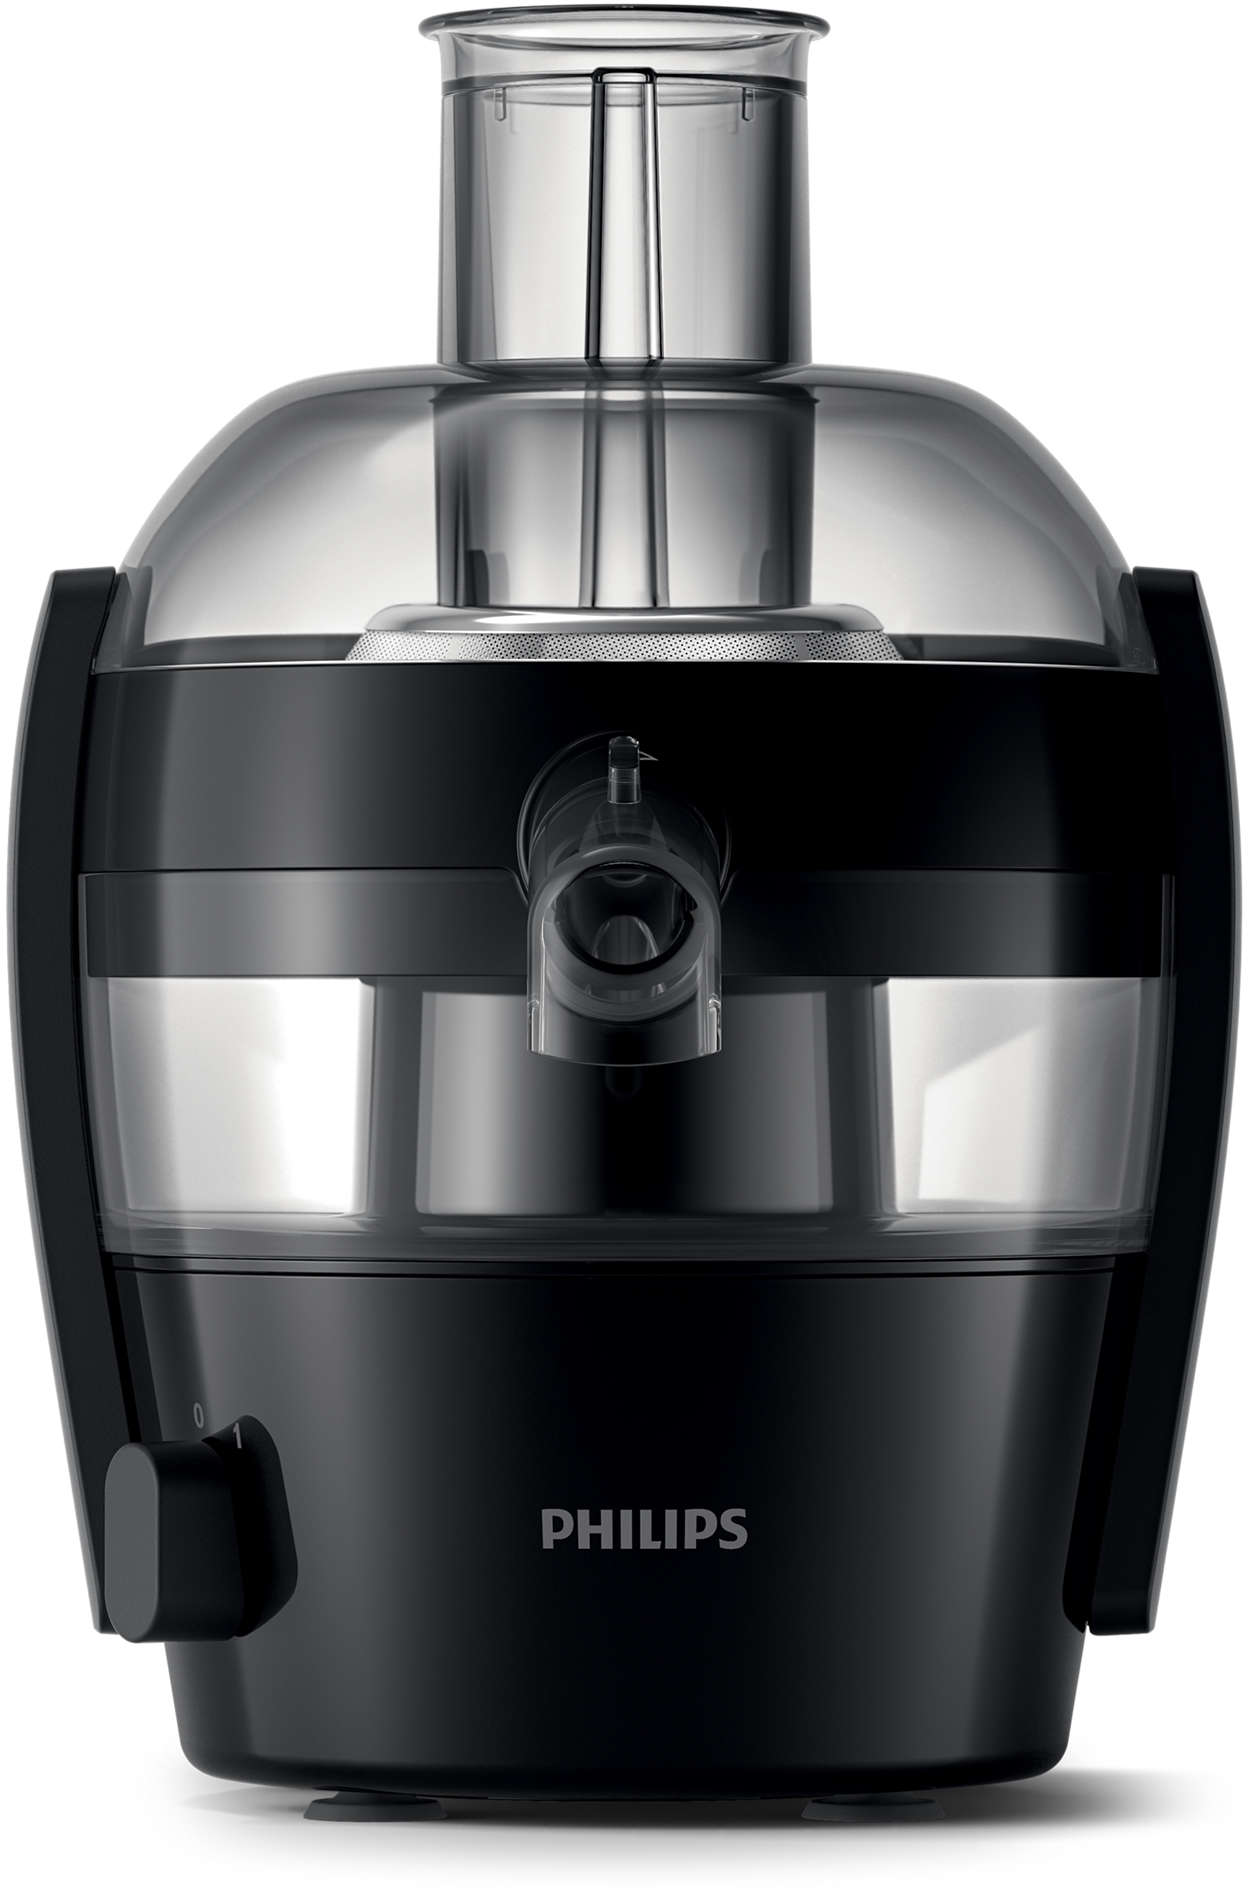 viva collection juicer hr1832 01 philips. Black Bedroom Furniture Sets. Home Design Ideas